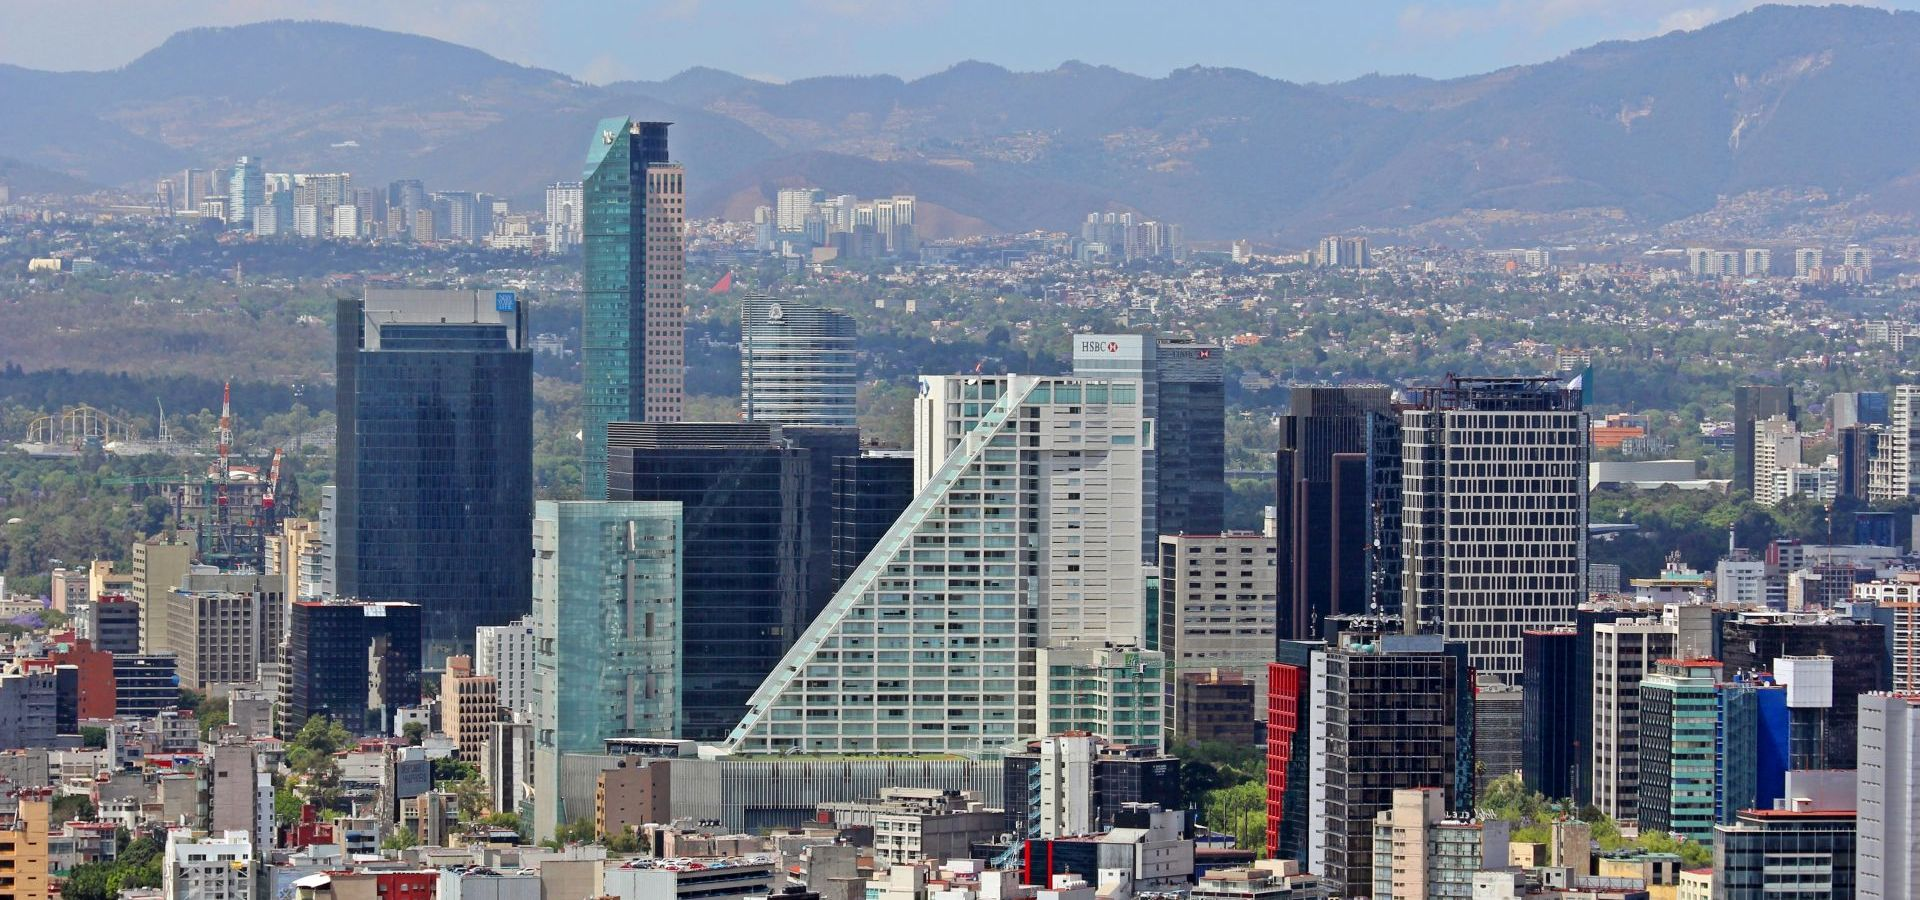 Skyscratchers of Mexico City with mountains in the background.